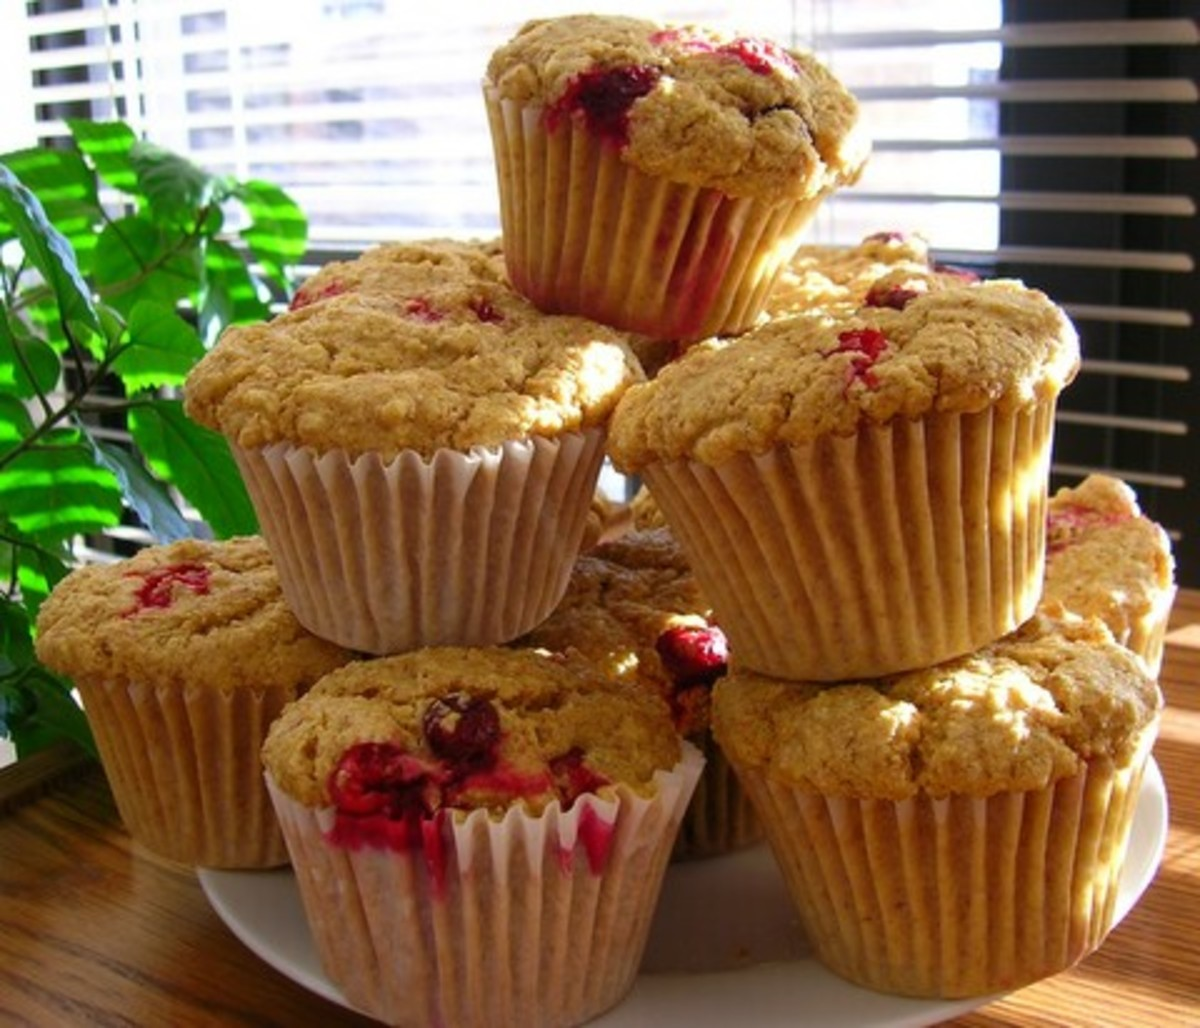 Line muffin tins with cupcake papers, or spray each cup well with no-calorie, fat-free cooking spray.